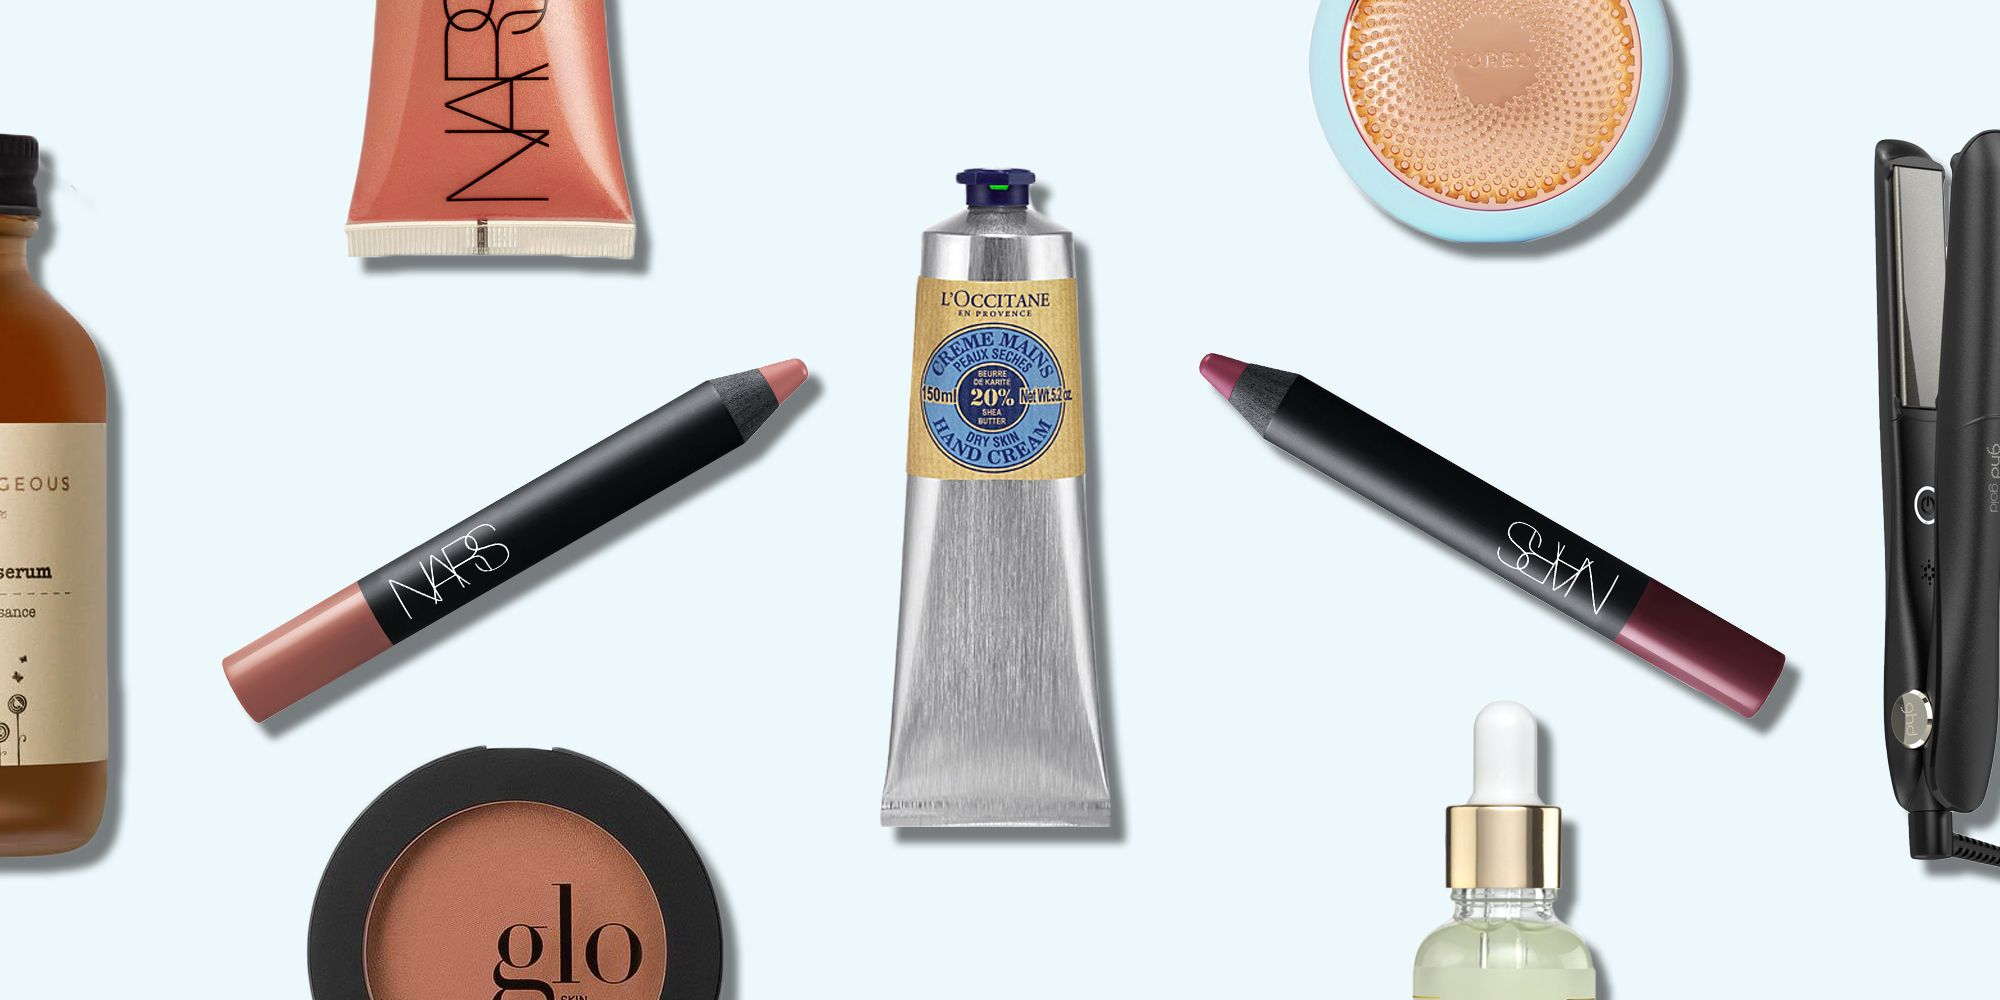 The Best Black Friday 2019 Make-Up Deals You Need To Know About